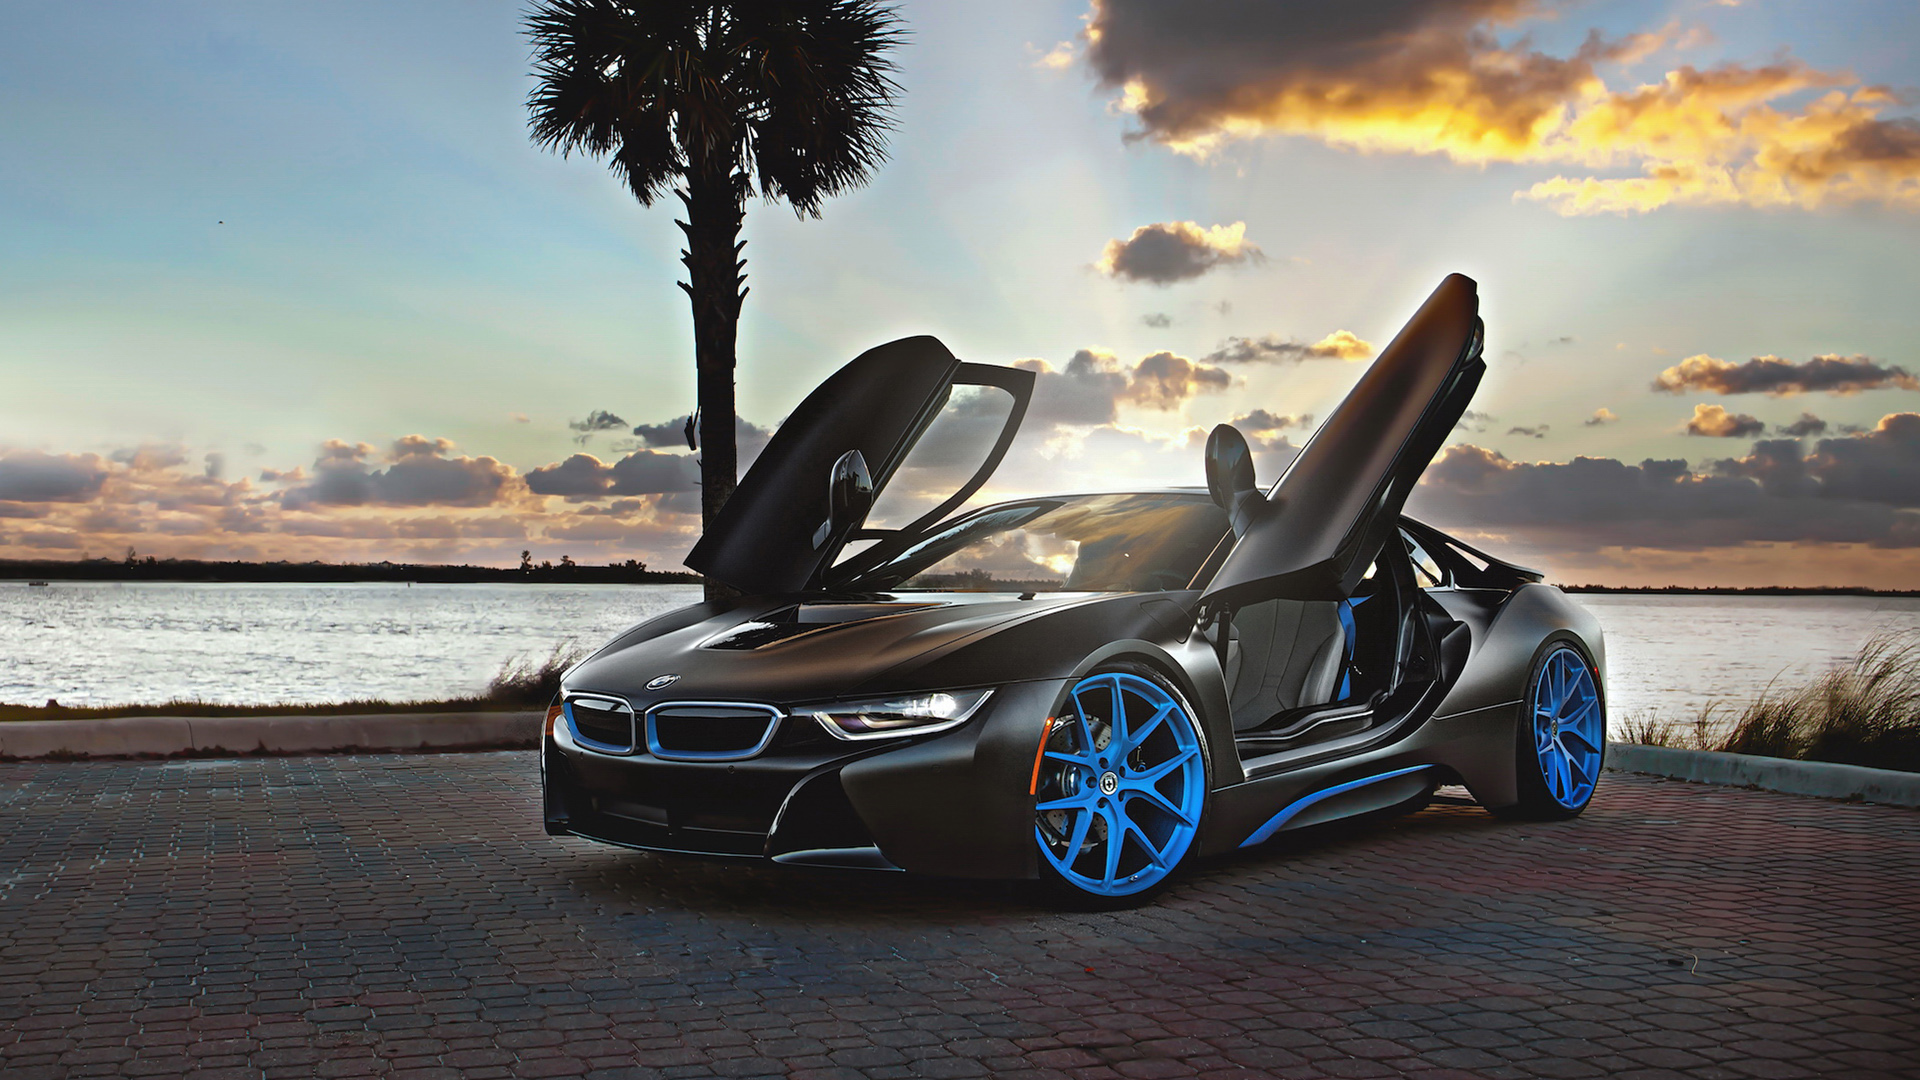 Bmw I8 2015 Hd Wallpaper Wallpapersafari